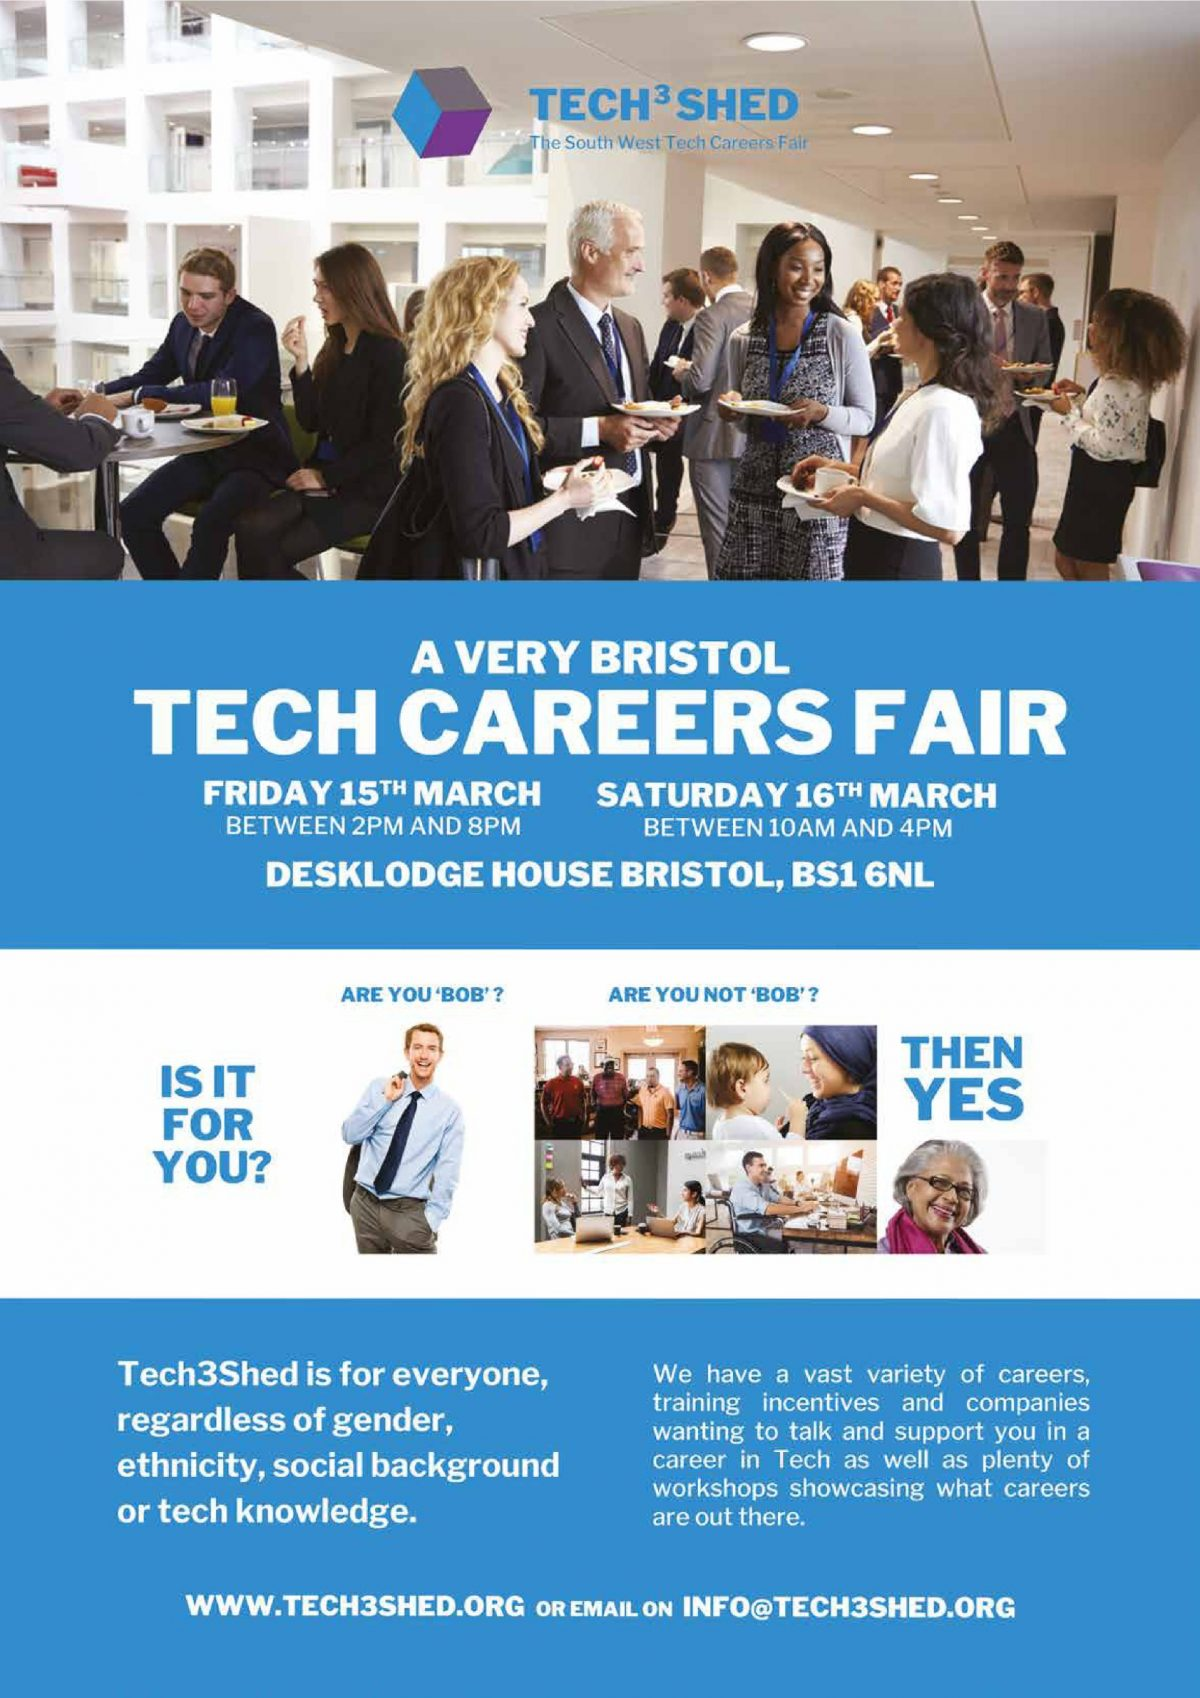 Don't forget to sign up to the Tech3Shed careers event!